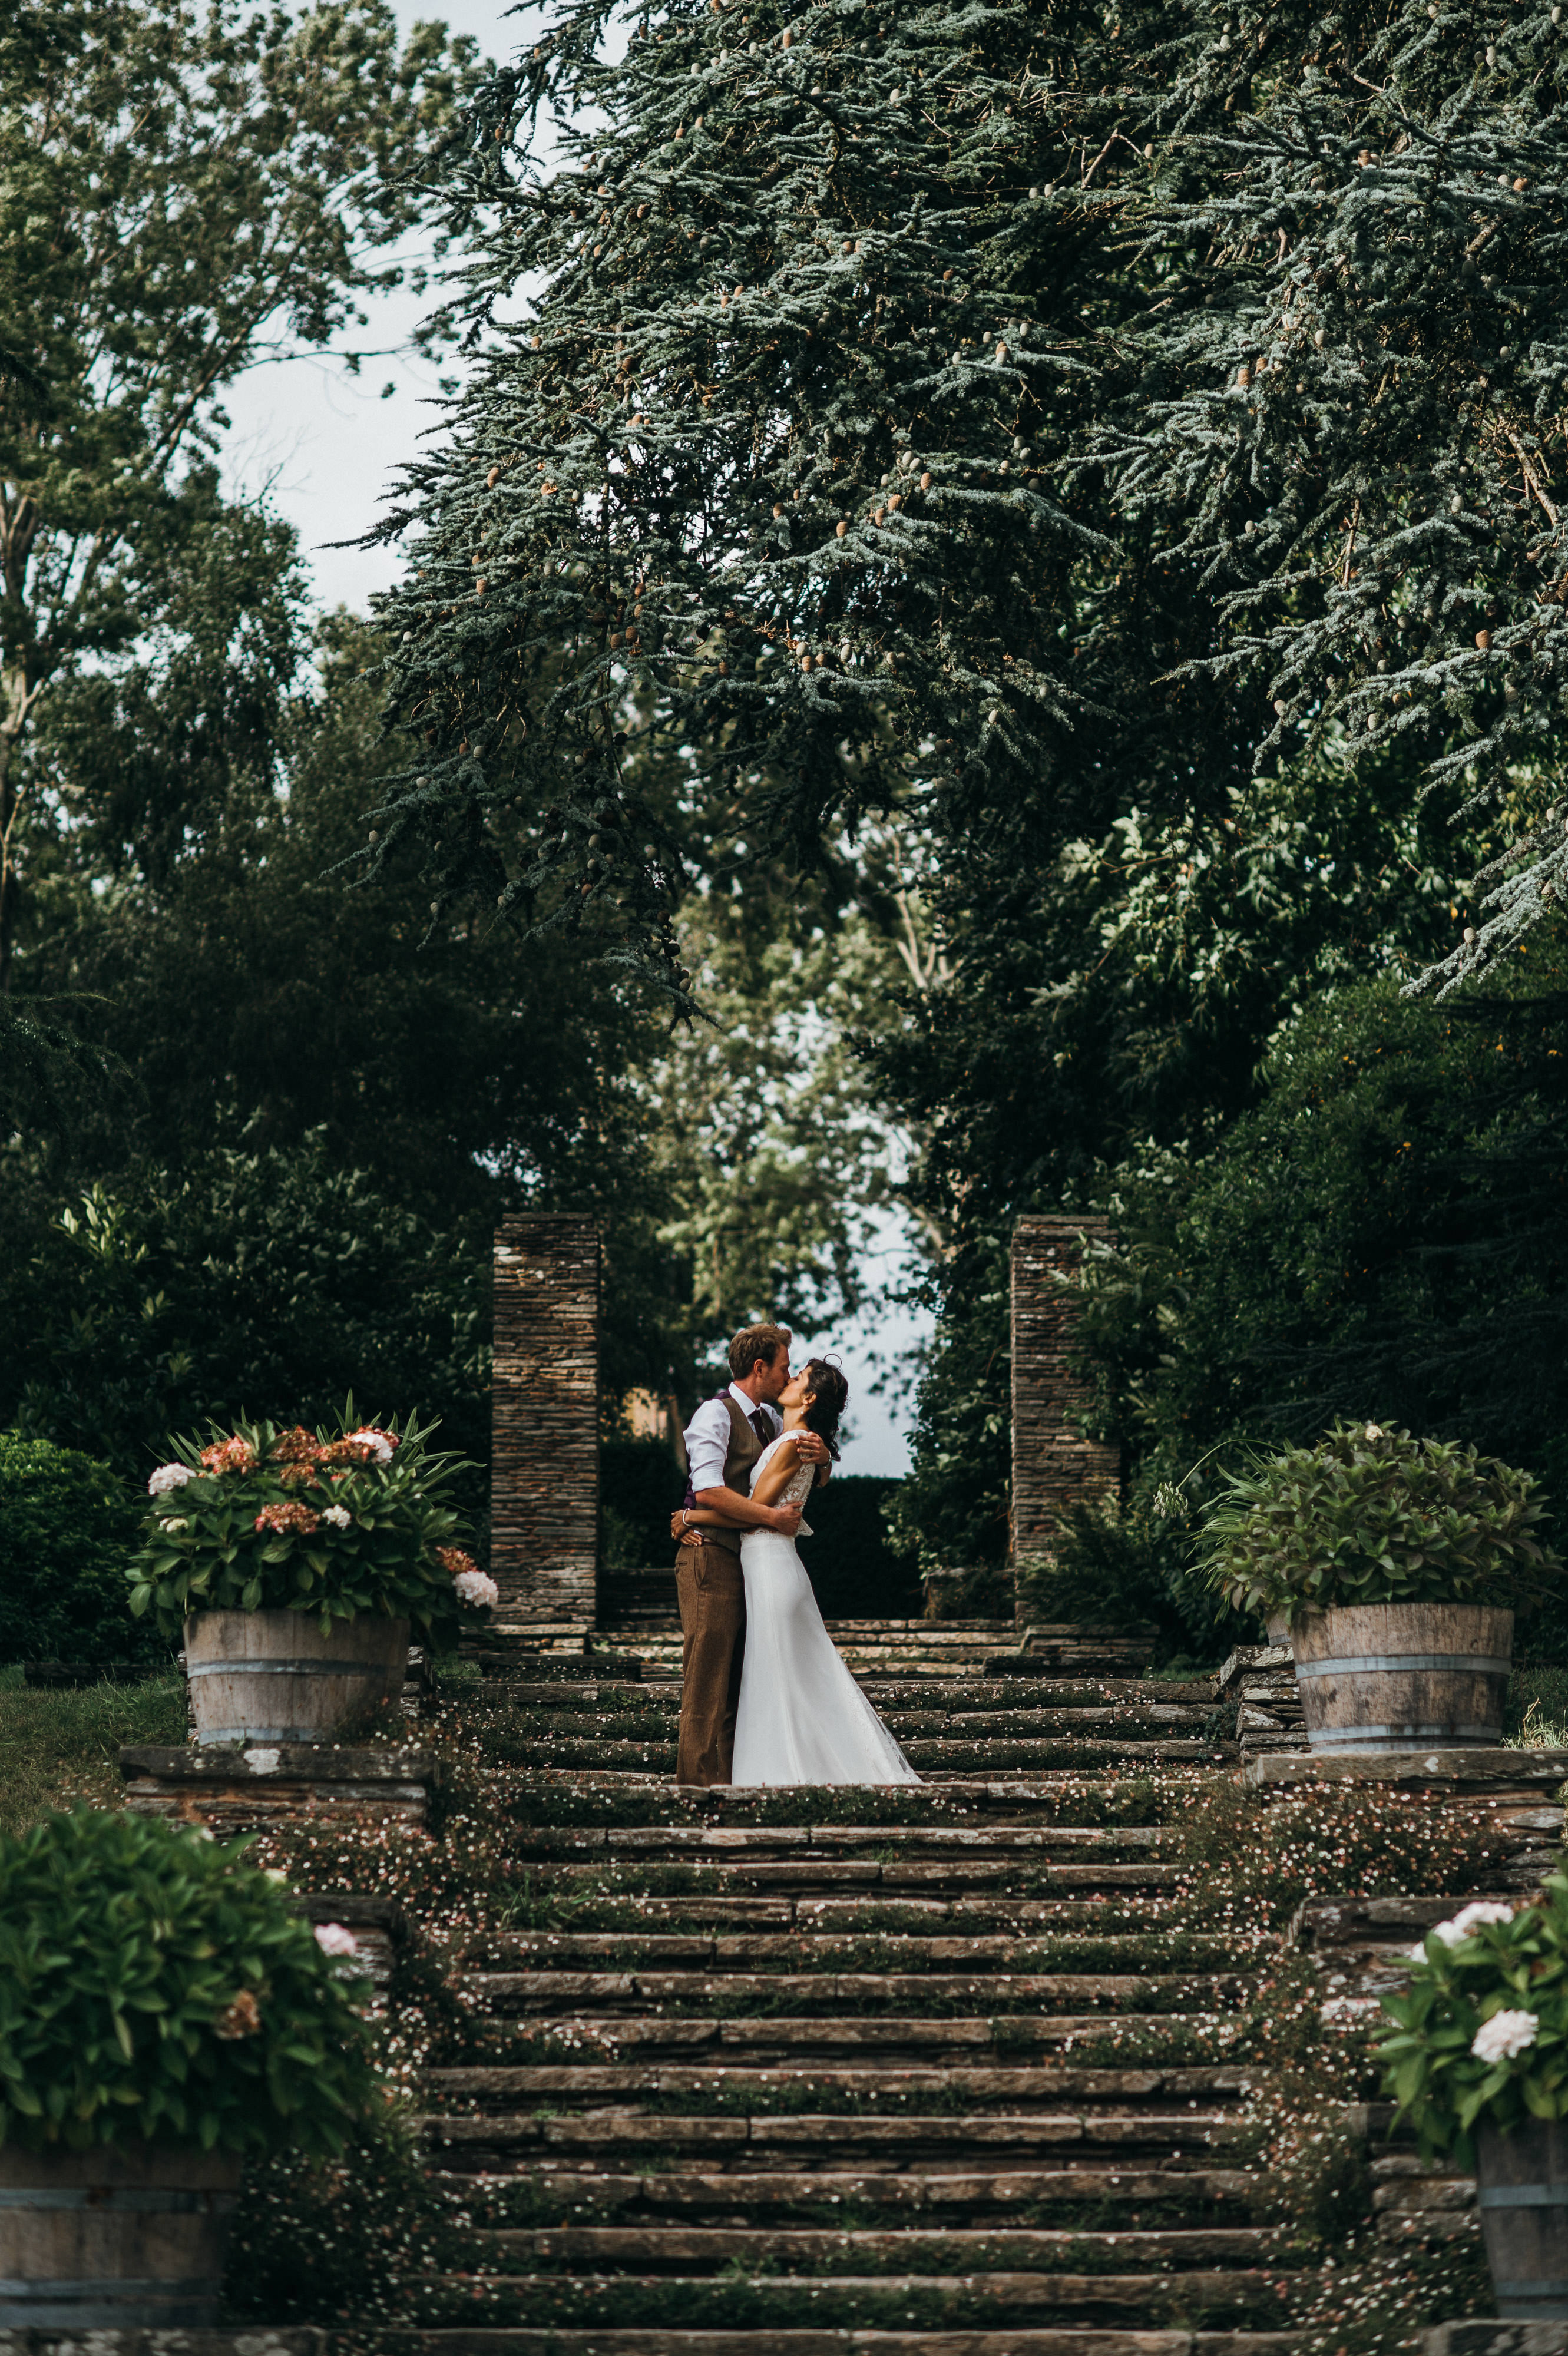 Bride and Groom kiss on steps at Hestercombe Gardens